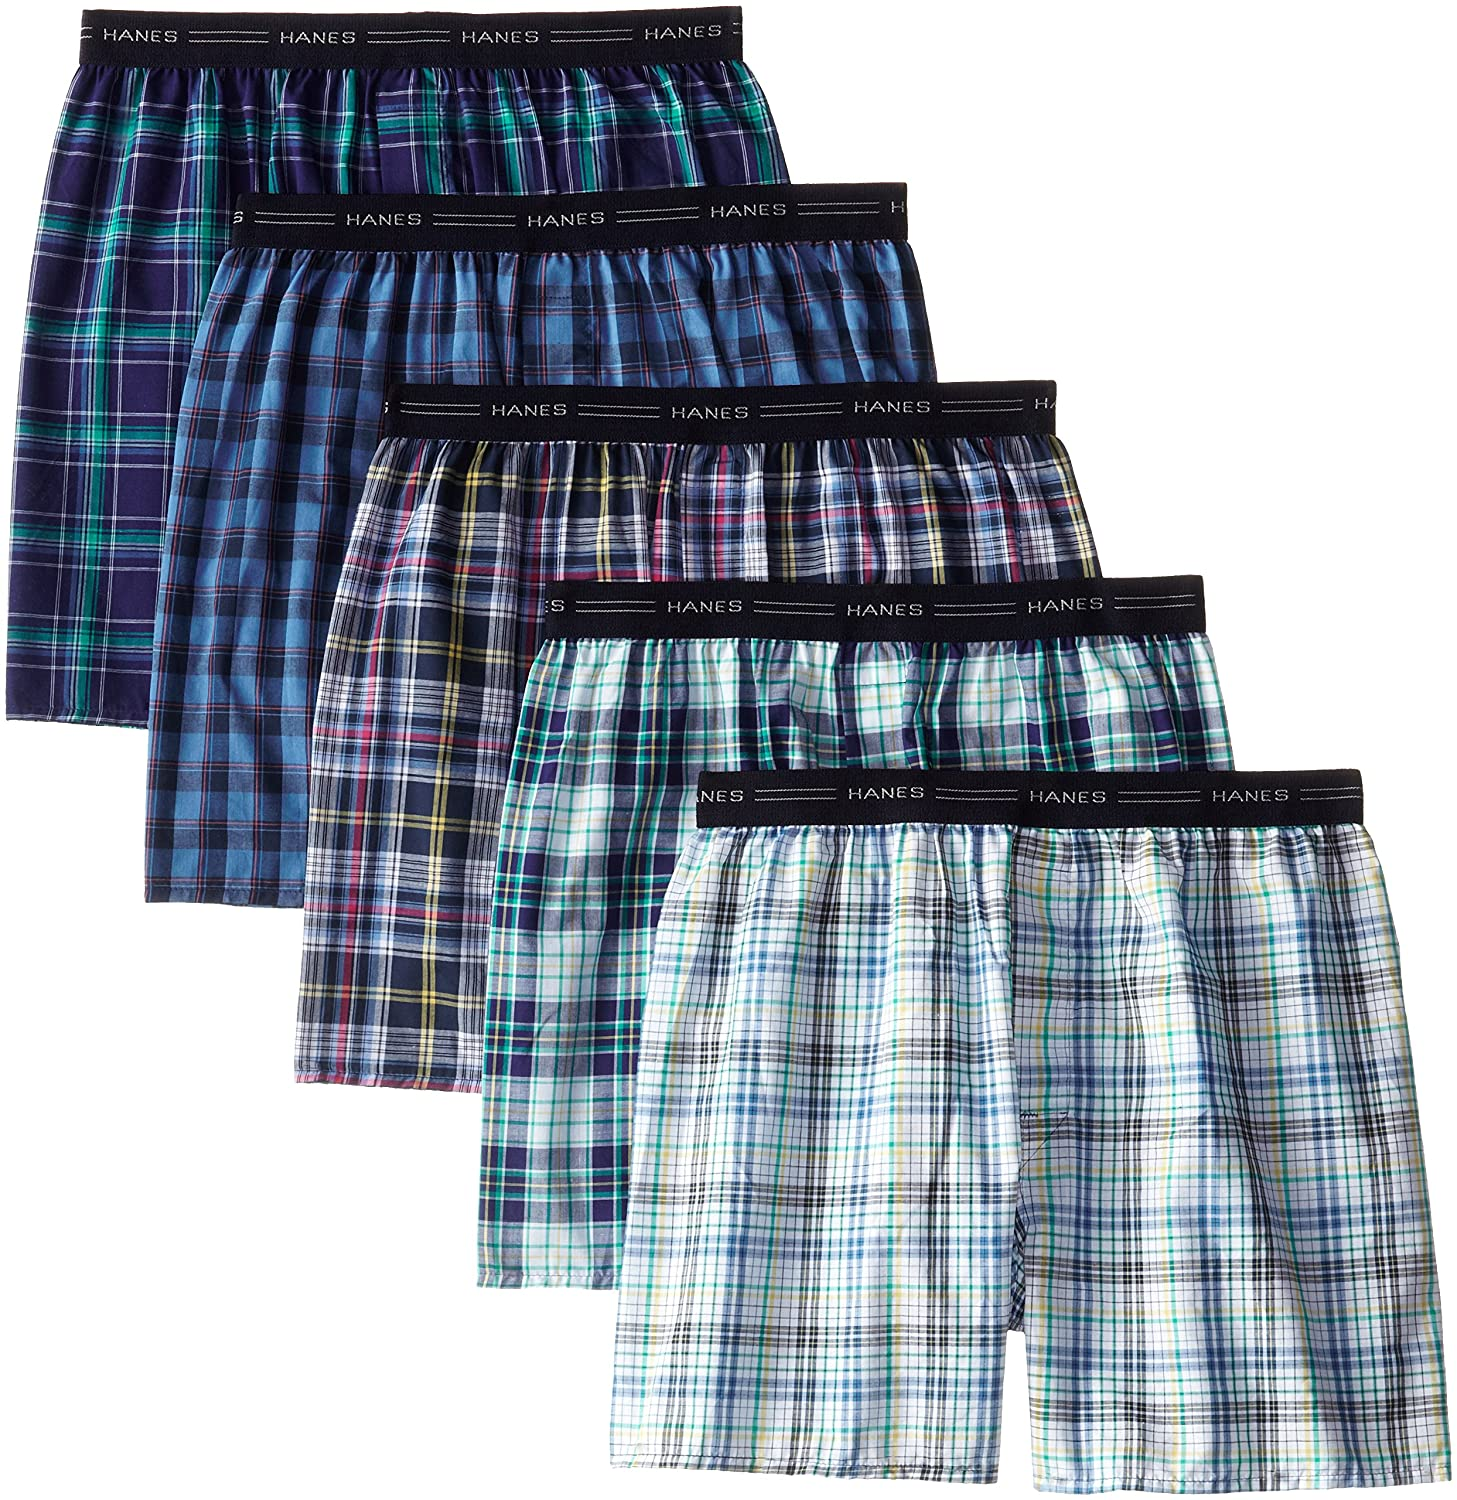 Hanes Men's 5-Pack Woven Exposed Waistband Boxers MWCBX5